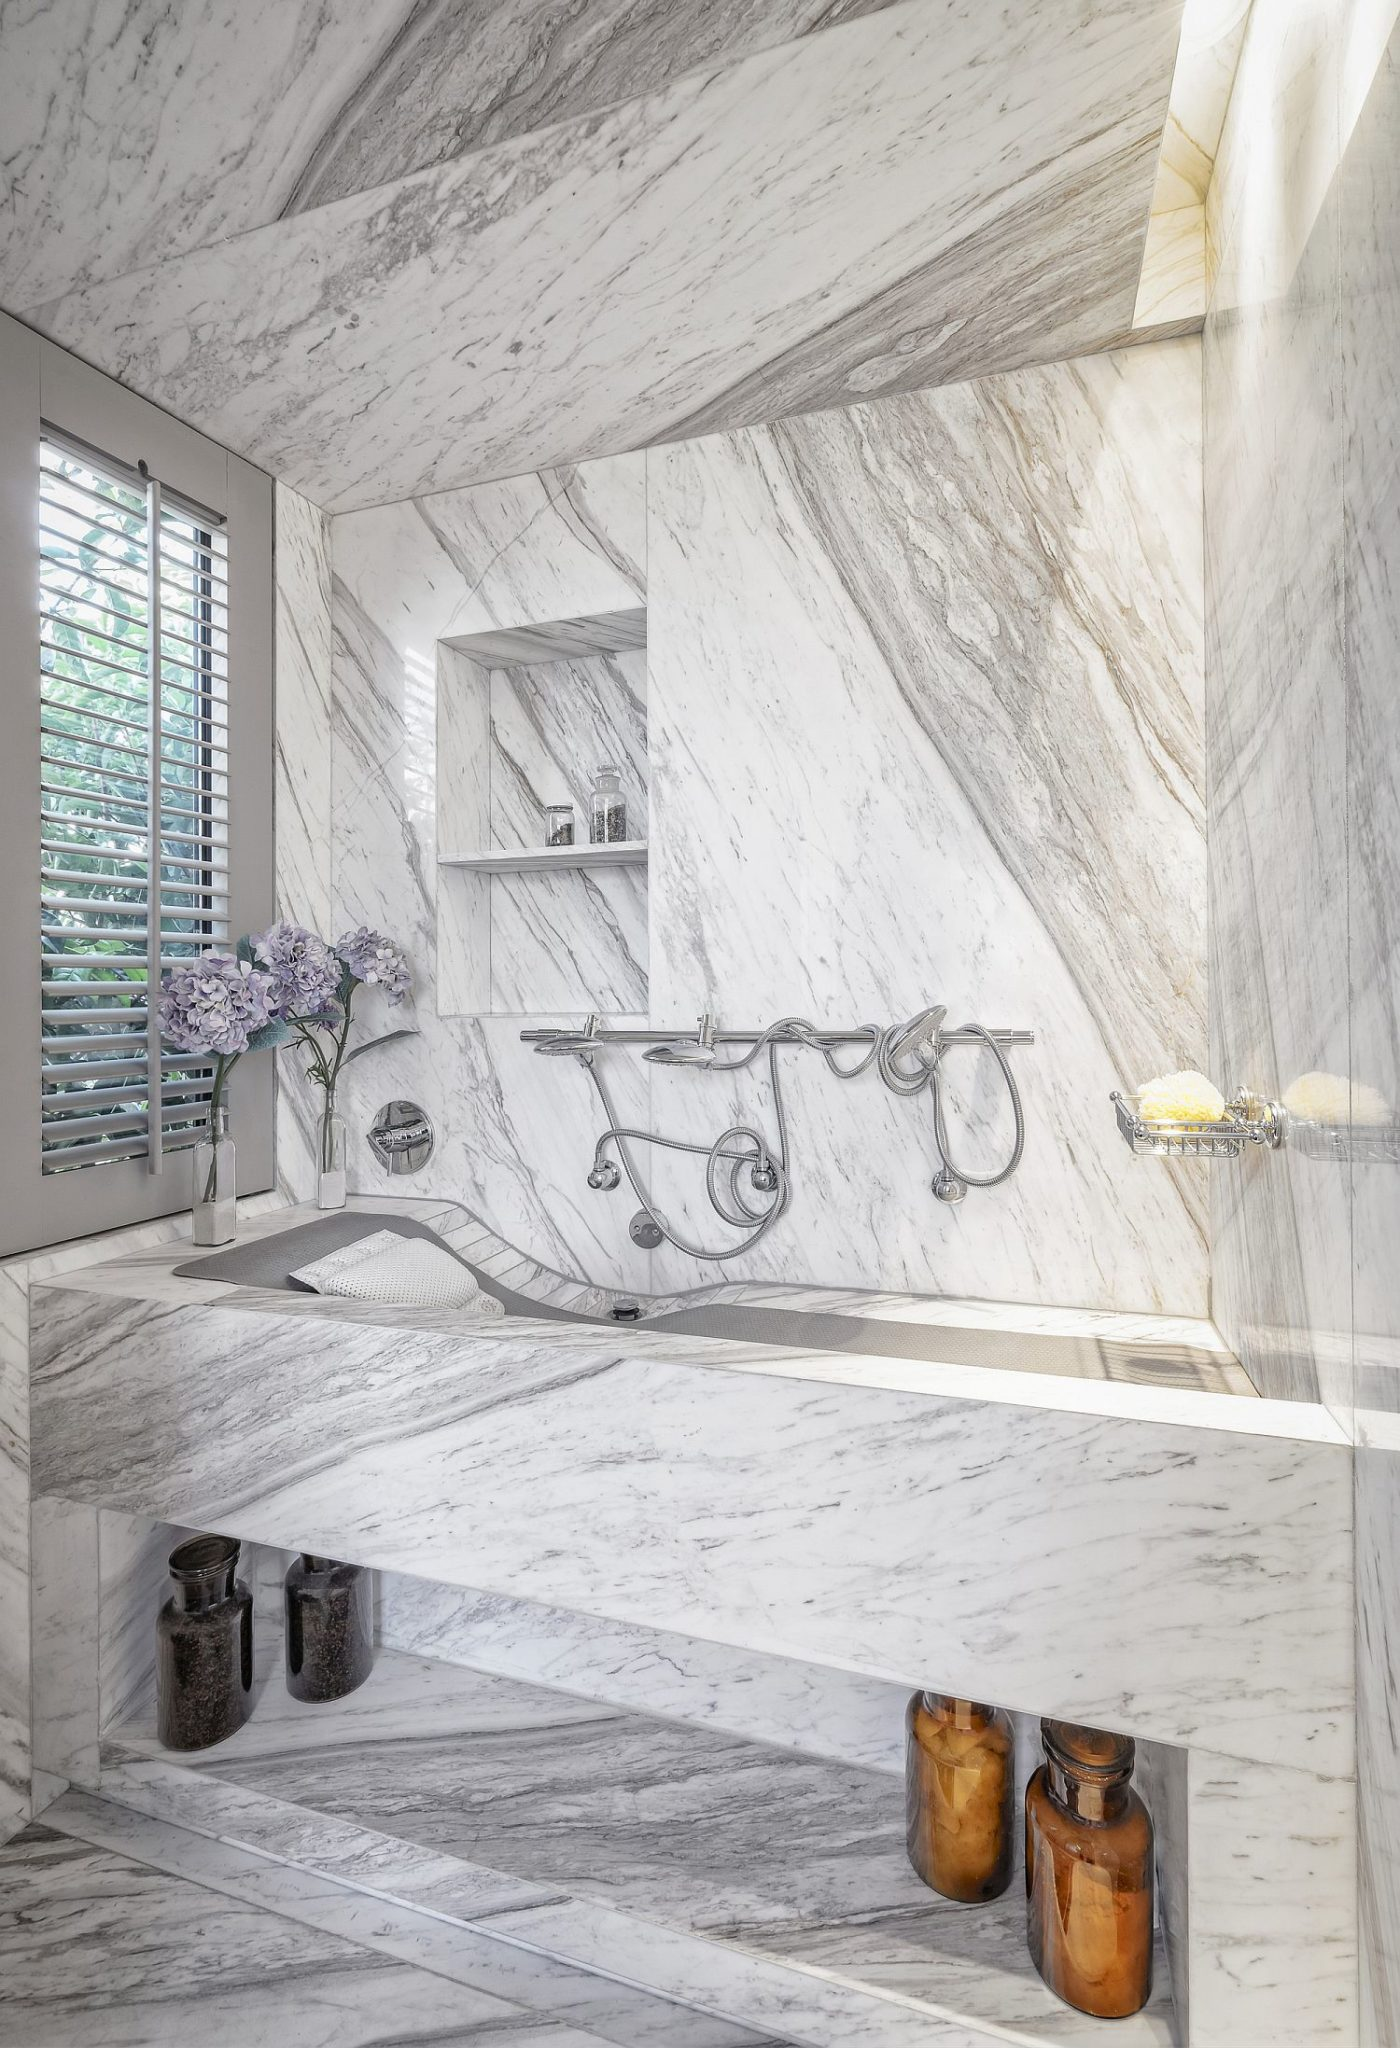 Polished contemporary bathroom in stone